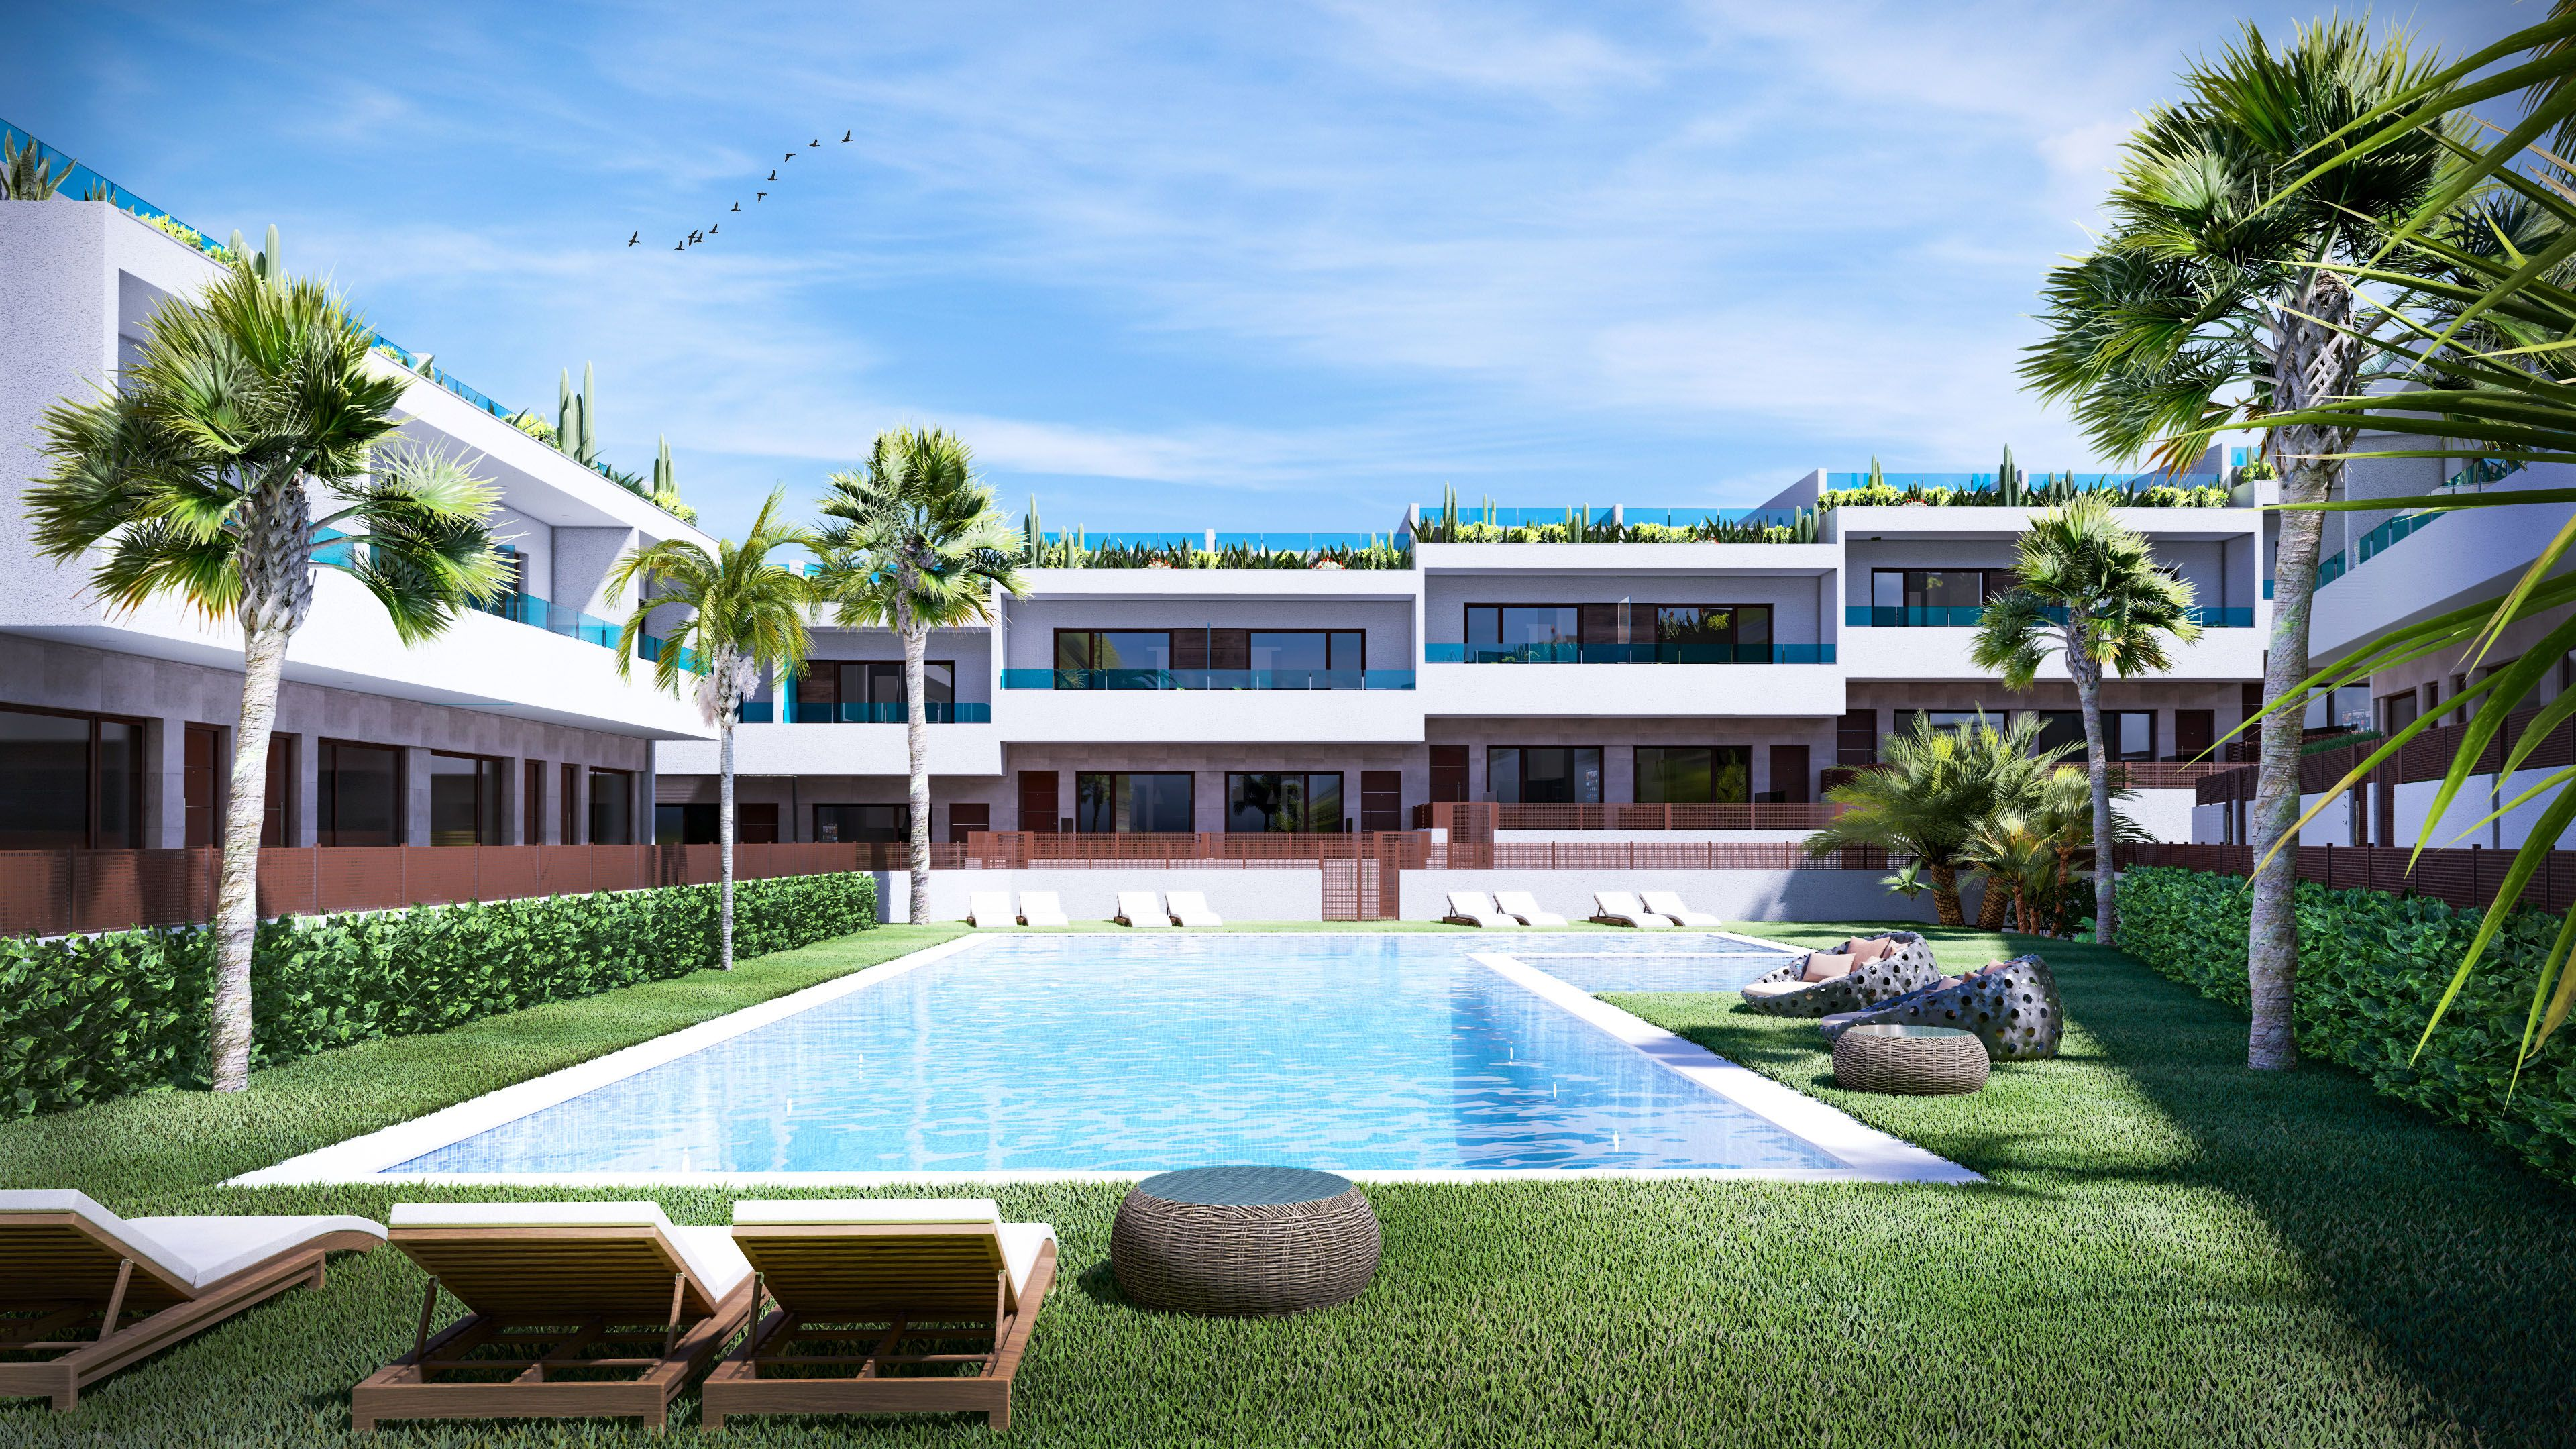 SPAIN COSTA BLANCA, Torrevieja – Los Balcones, new townhouses with sea and salt lake views